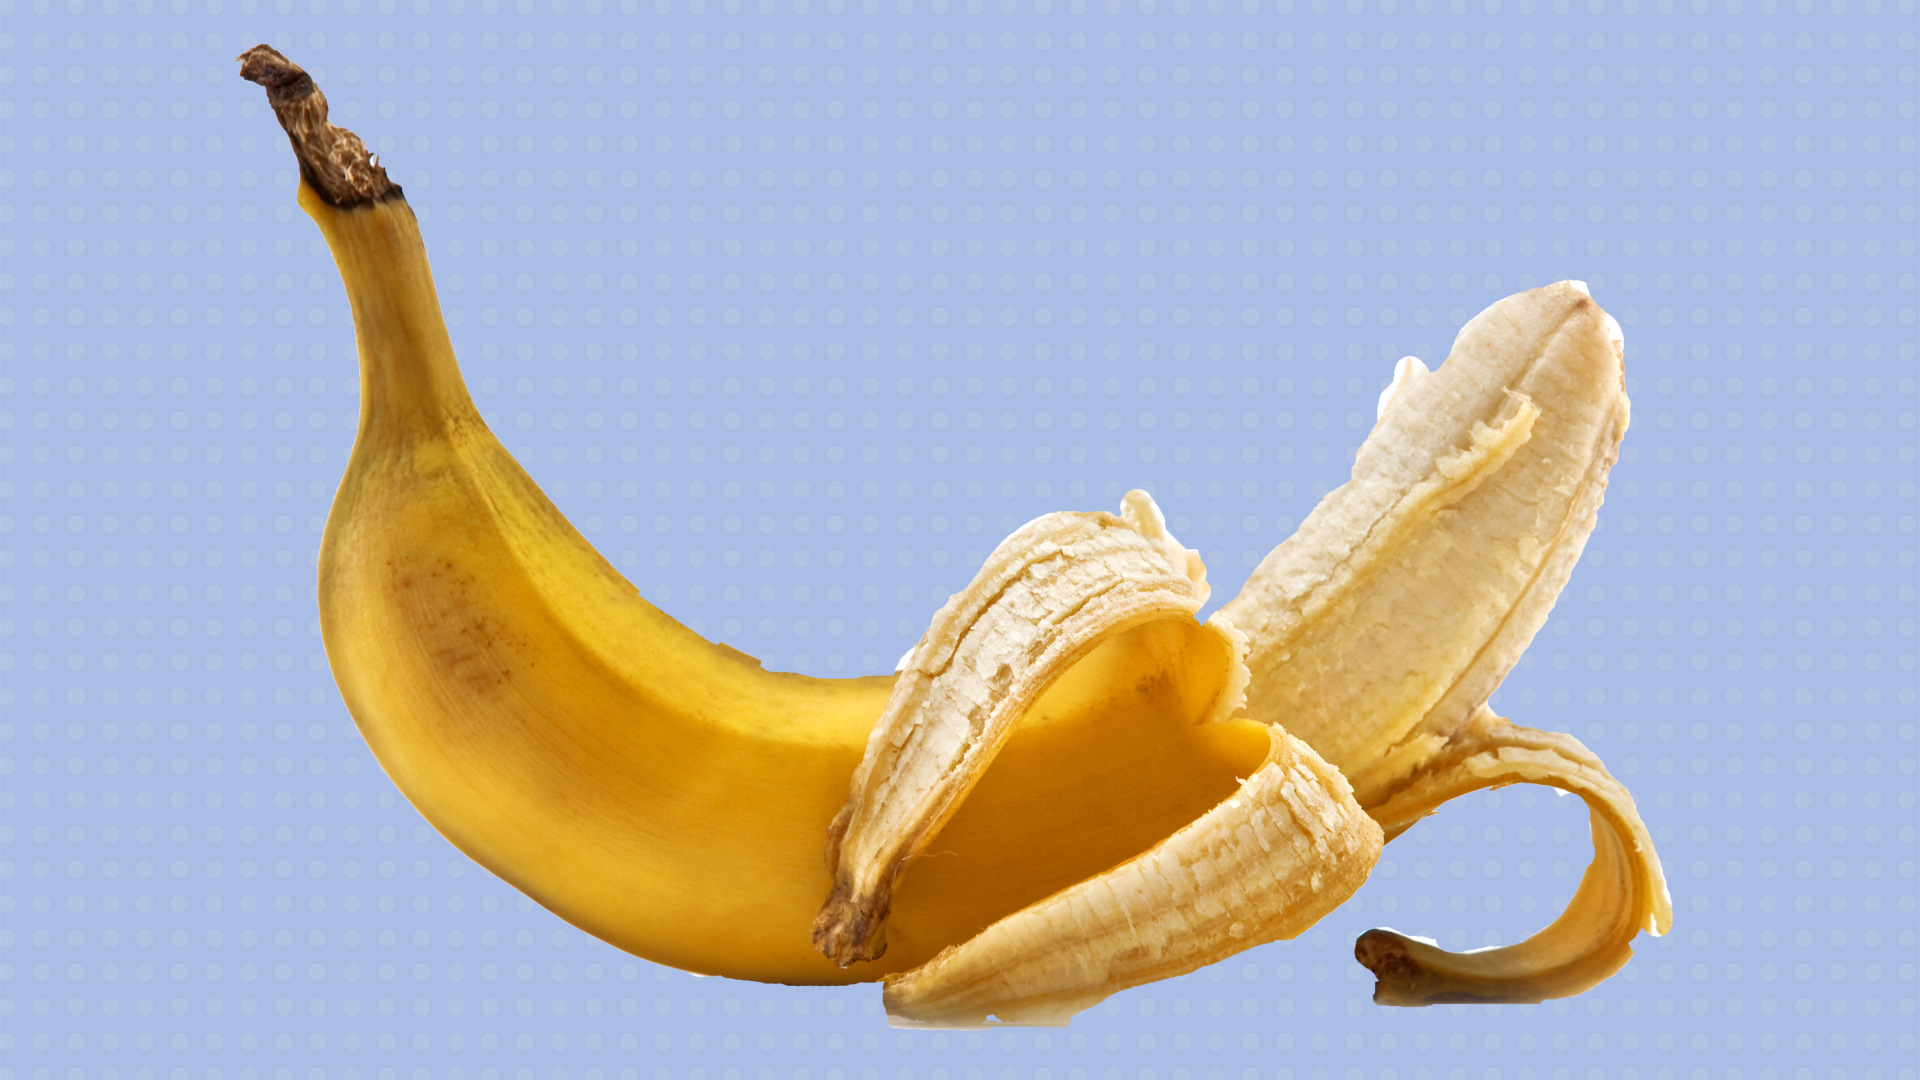 those strings on bananas are called pholem bundles